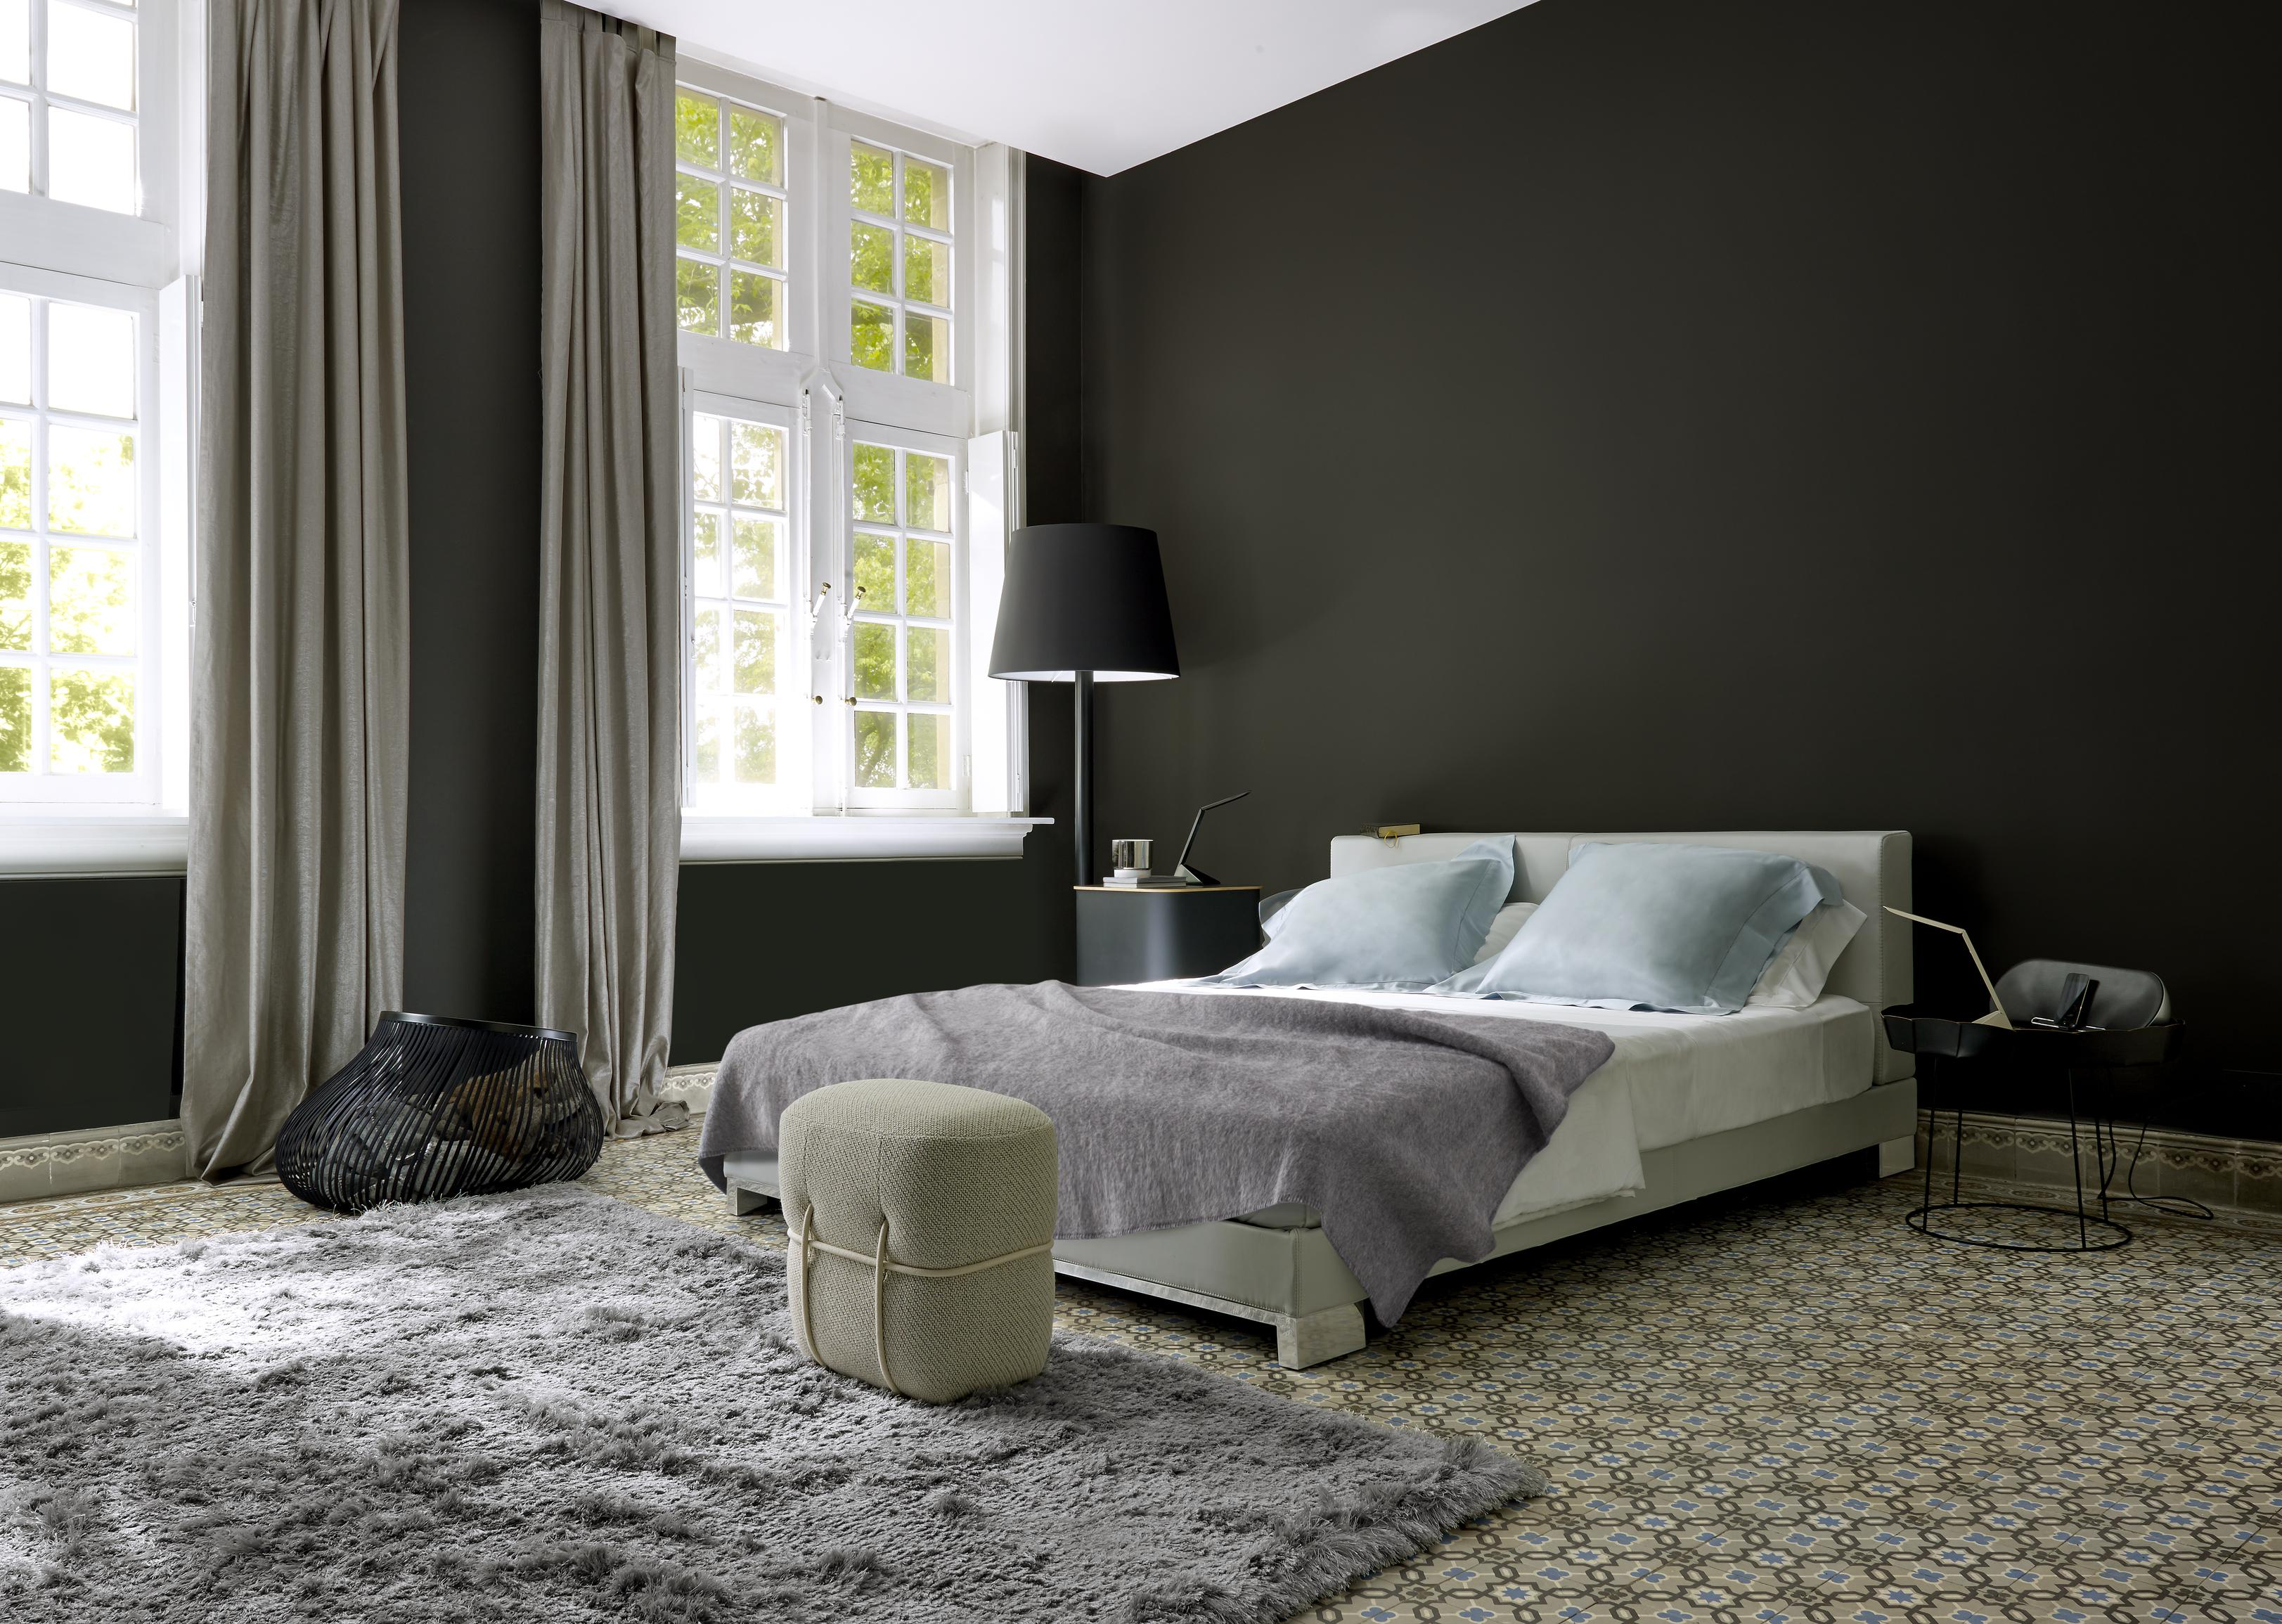 anna beds from designer christian werner ligne roset. Black Bedroom Furniture Sets. Home Design Ideas